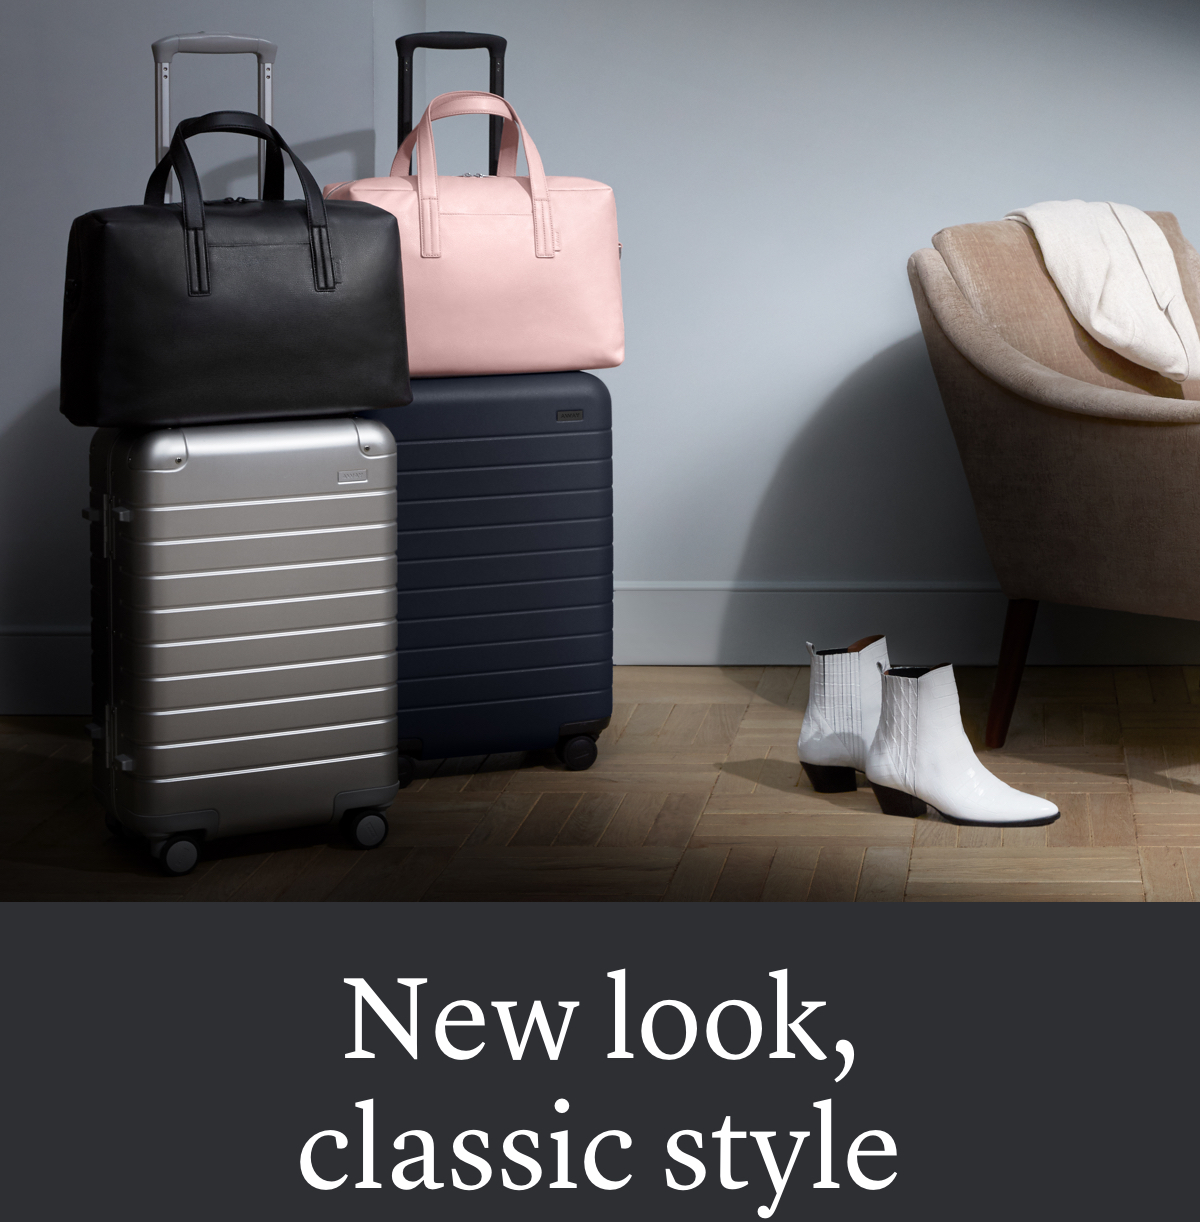 New look, classic style